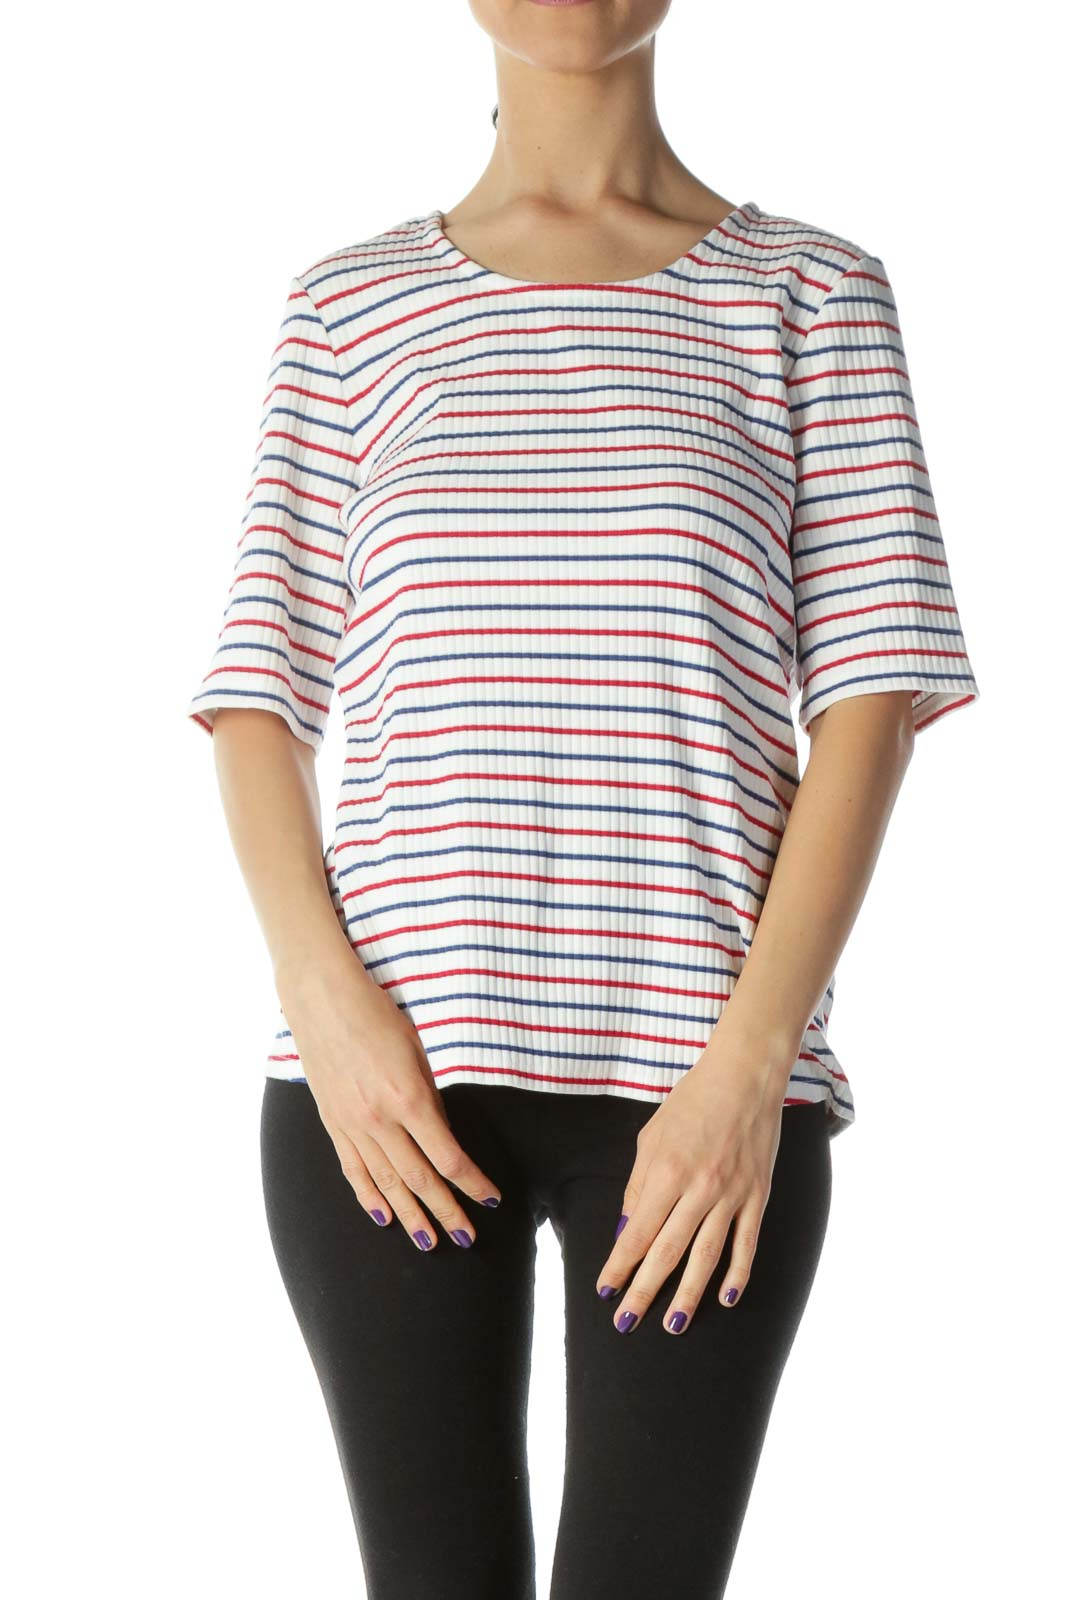 Red White & Blue Striped Ribbed Short Sleeve Knit Top